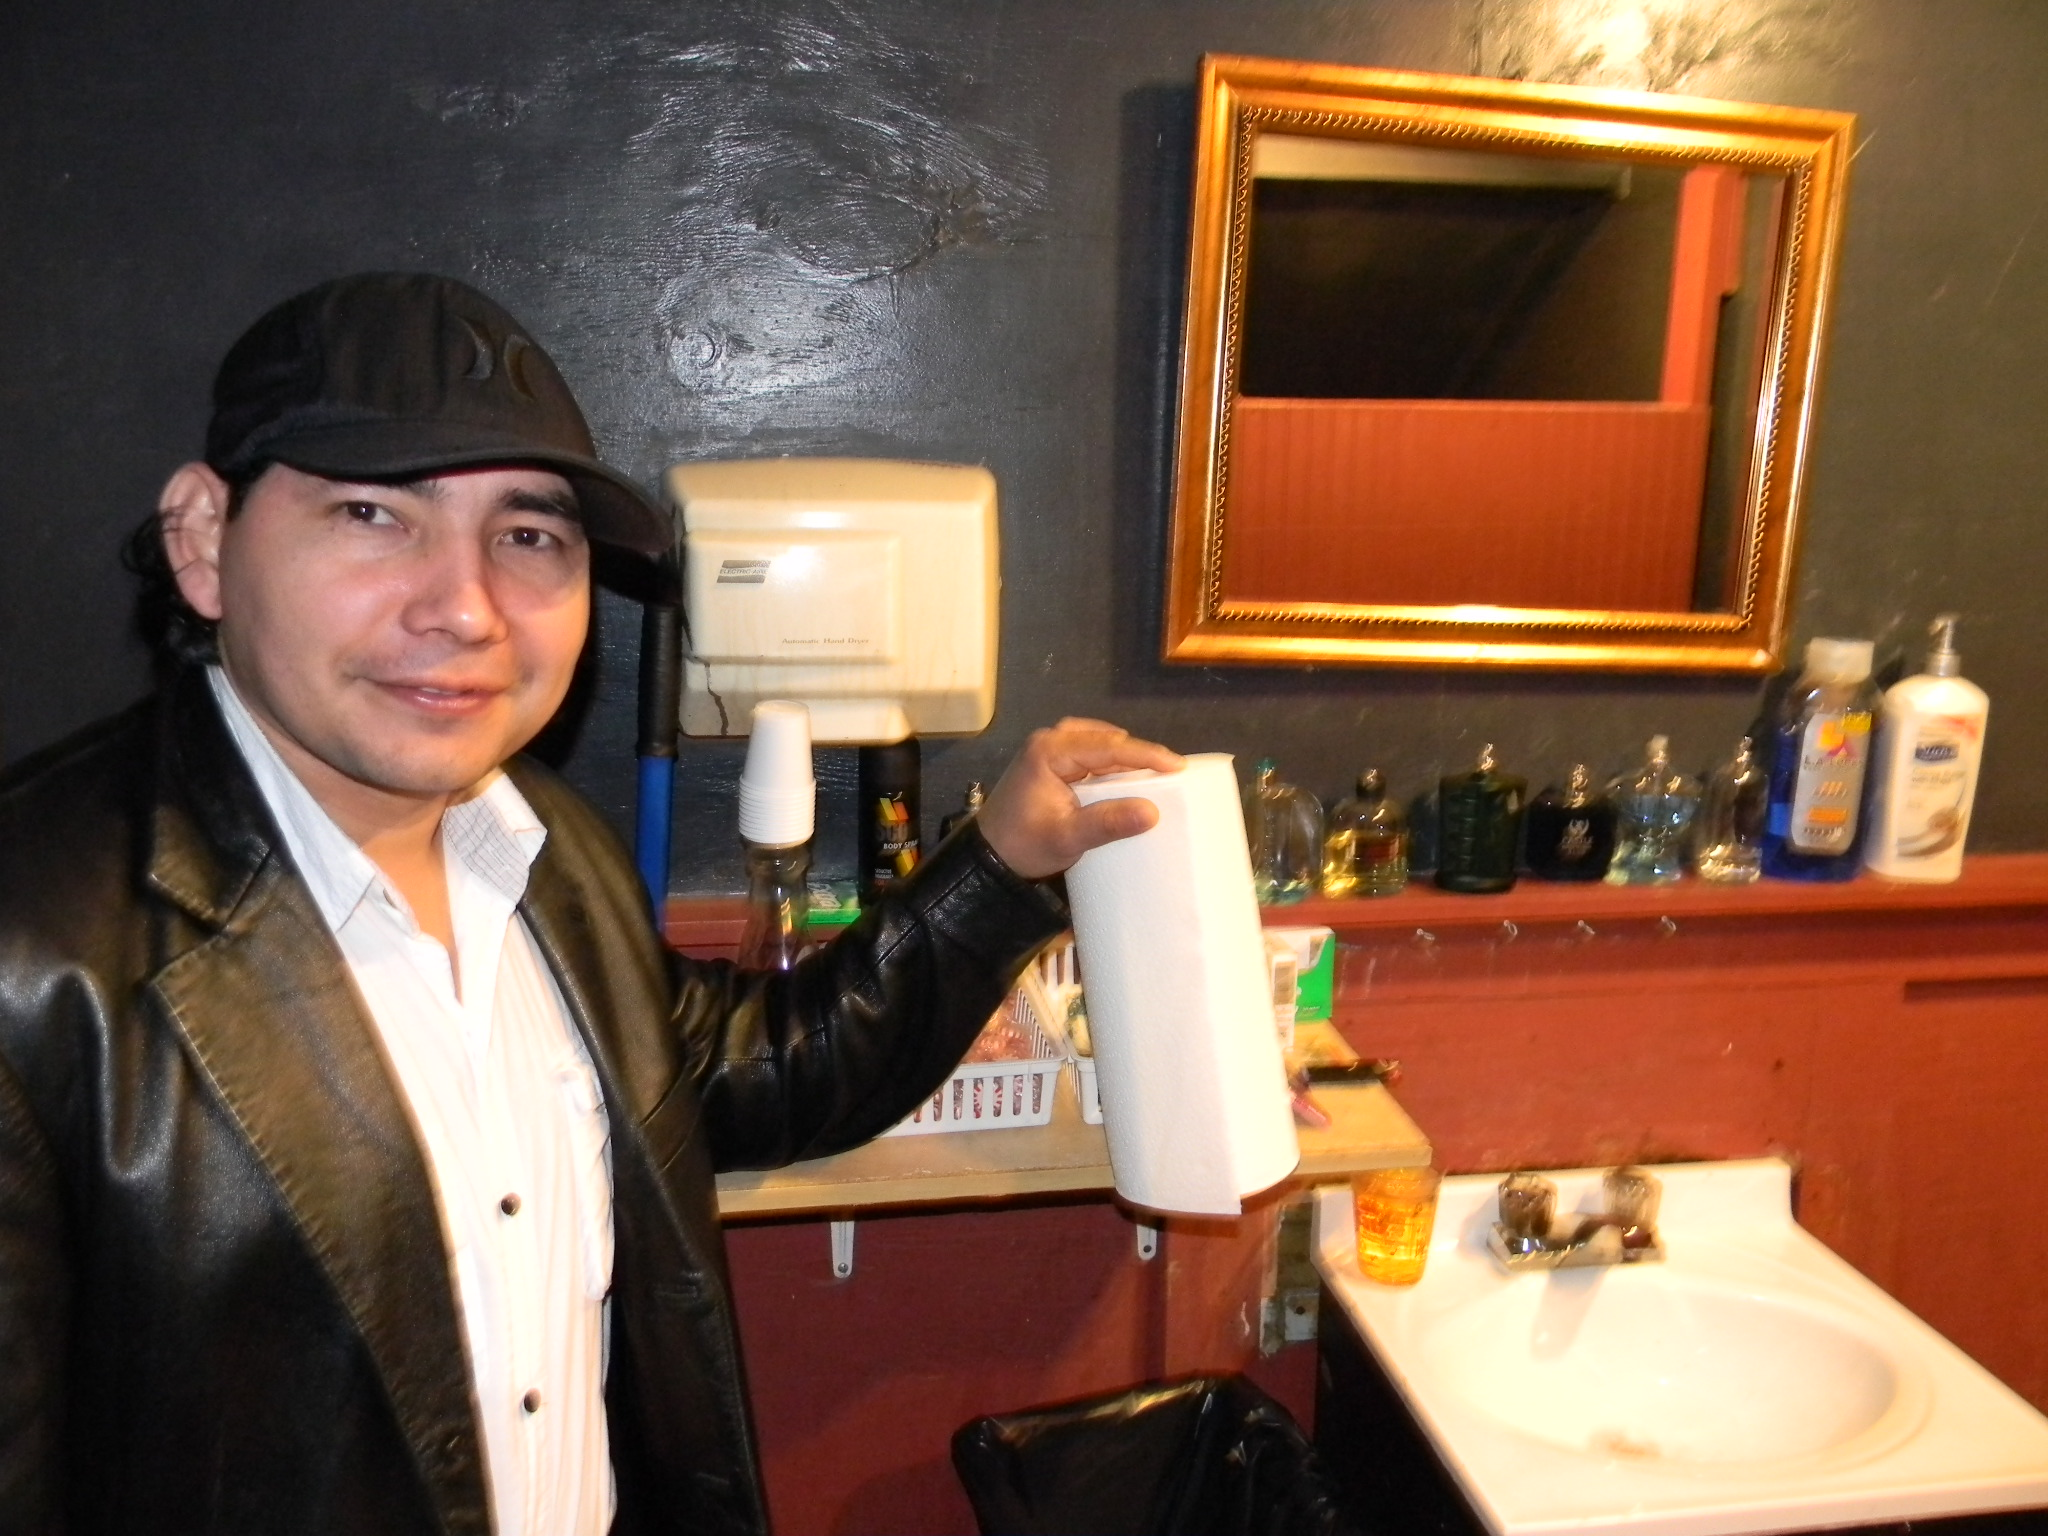 There was the same number of bathroom attendants as their was toilets in this bar   1. New Orleans Extras         pricelesshotdog